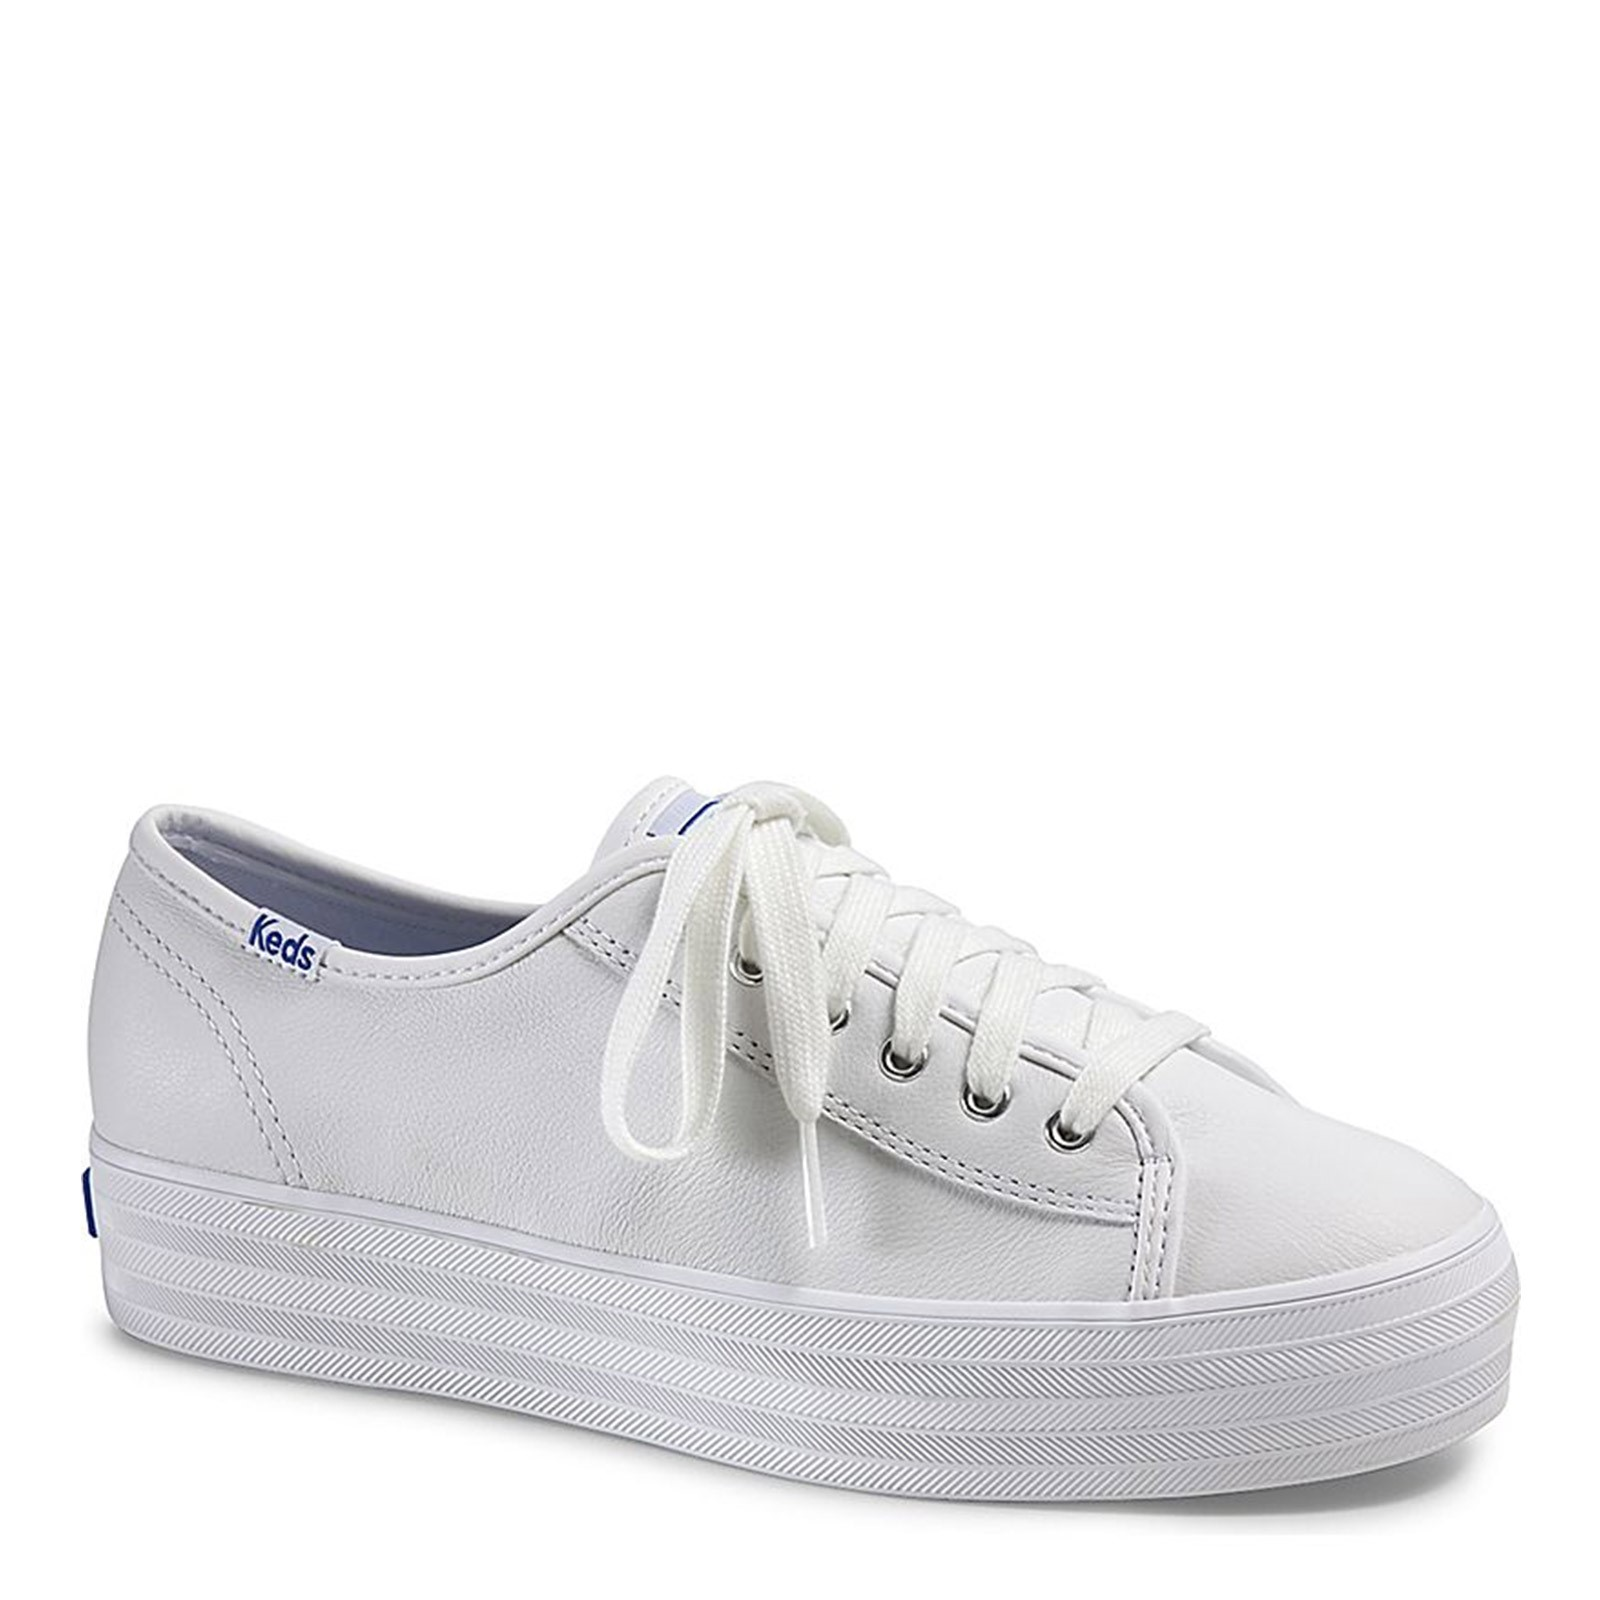 Women's Keds, Triple Kick Leather Sneakers